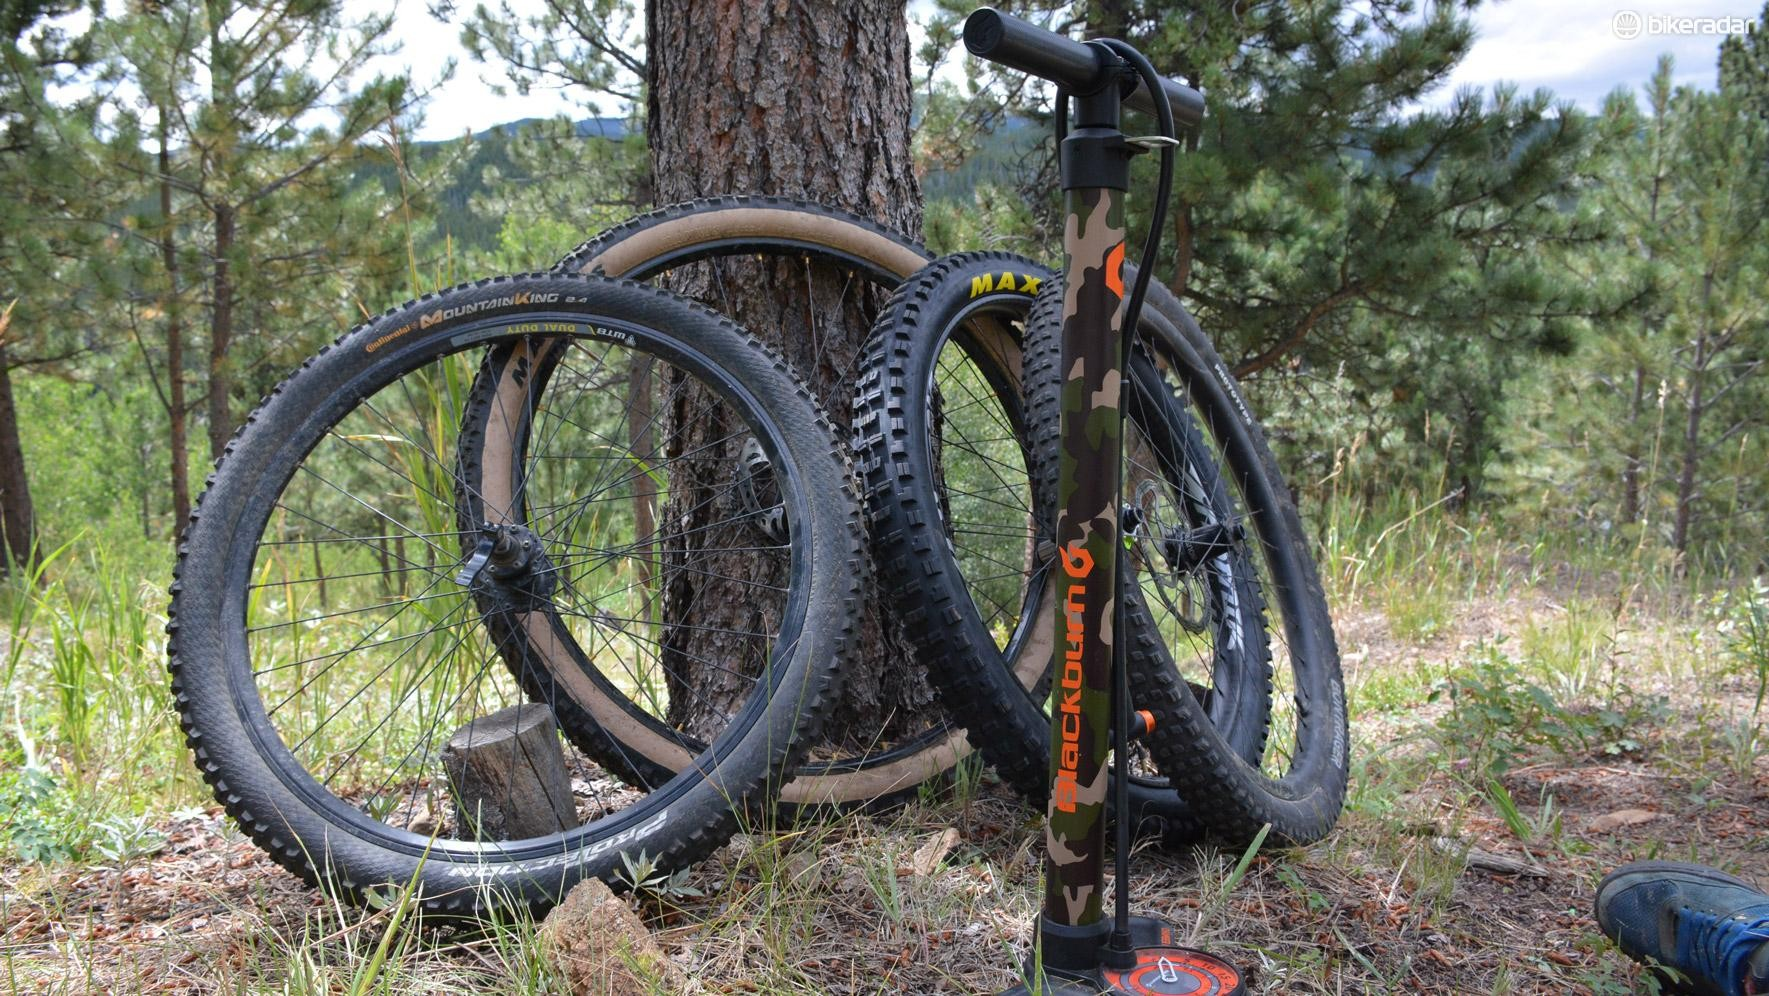 The Chamber HV makes quick inflation work of everything from 26in to full-on fat bike rubber